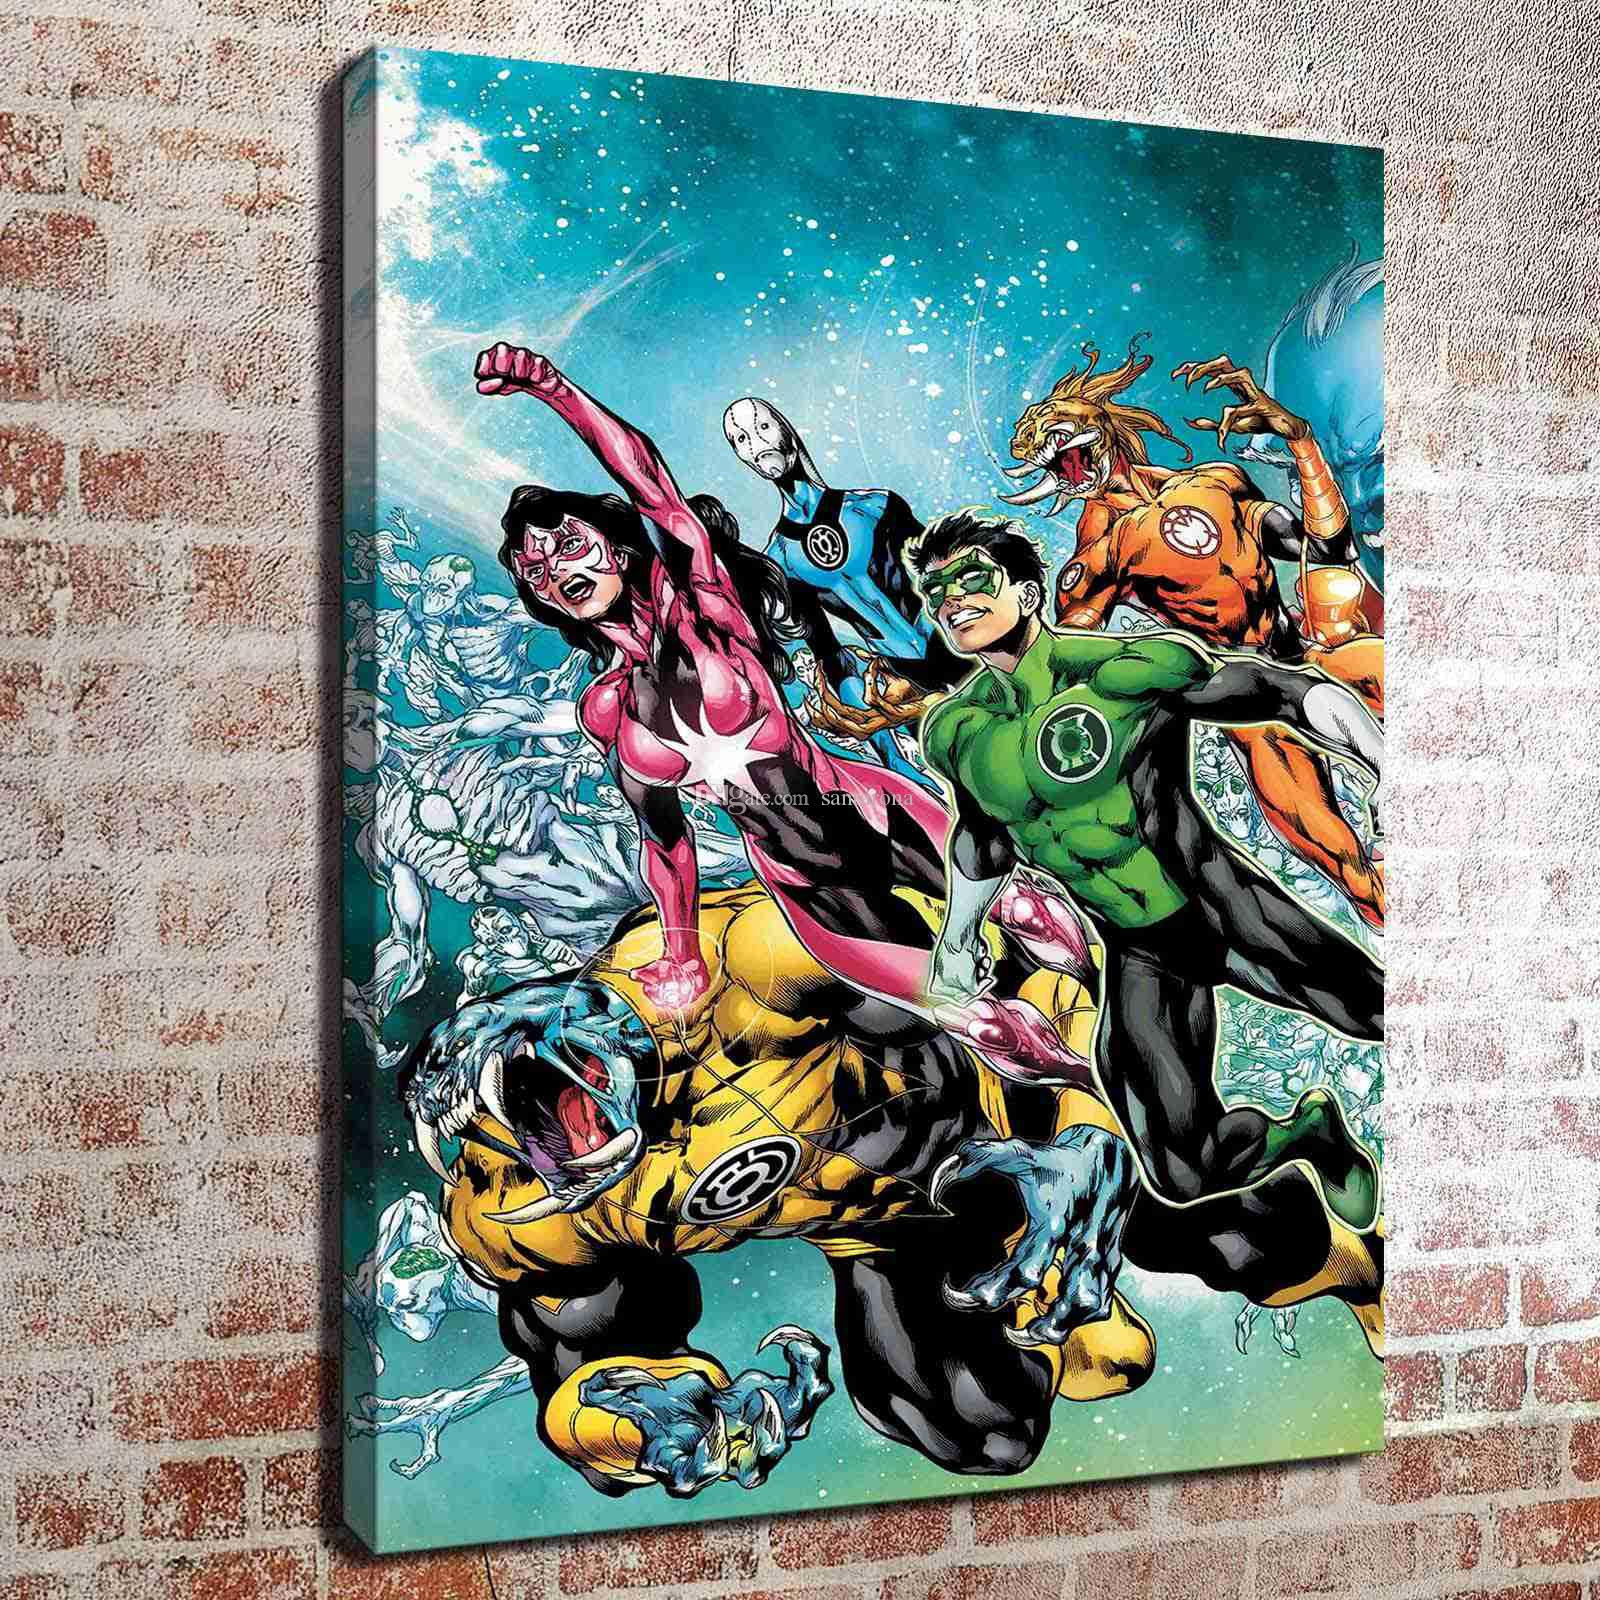 2018 No Frame Green Lantern New Guard Hd Canvas Print Wall Art Oil Painting Pictures Home Decor Bedroom Living Room Kitchen Decoration From Santarona ... & 2018 No Frame Green Lantern New Guard Hd Canvas Print Wall Art Oil ...